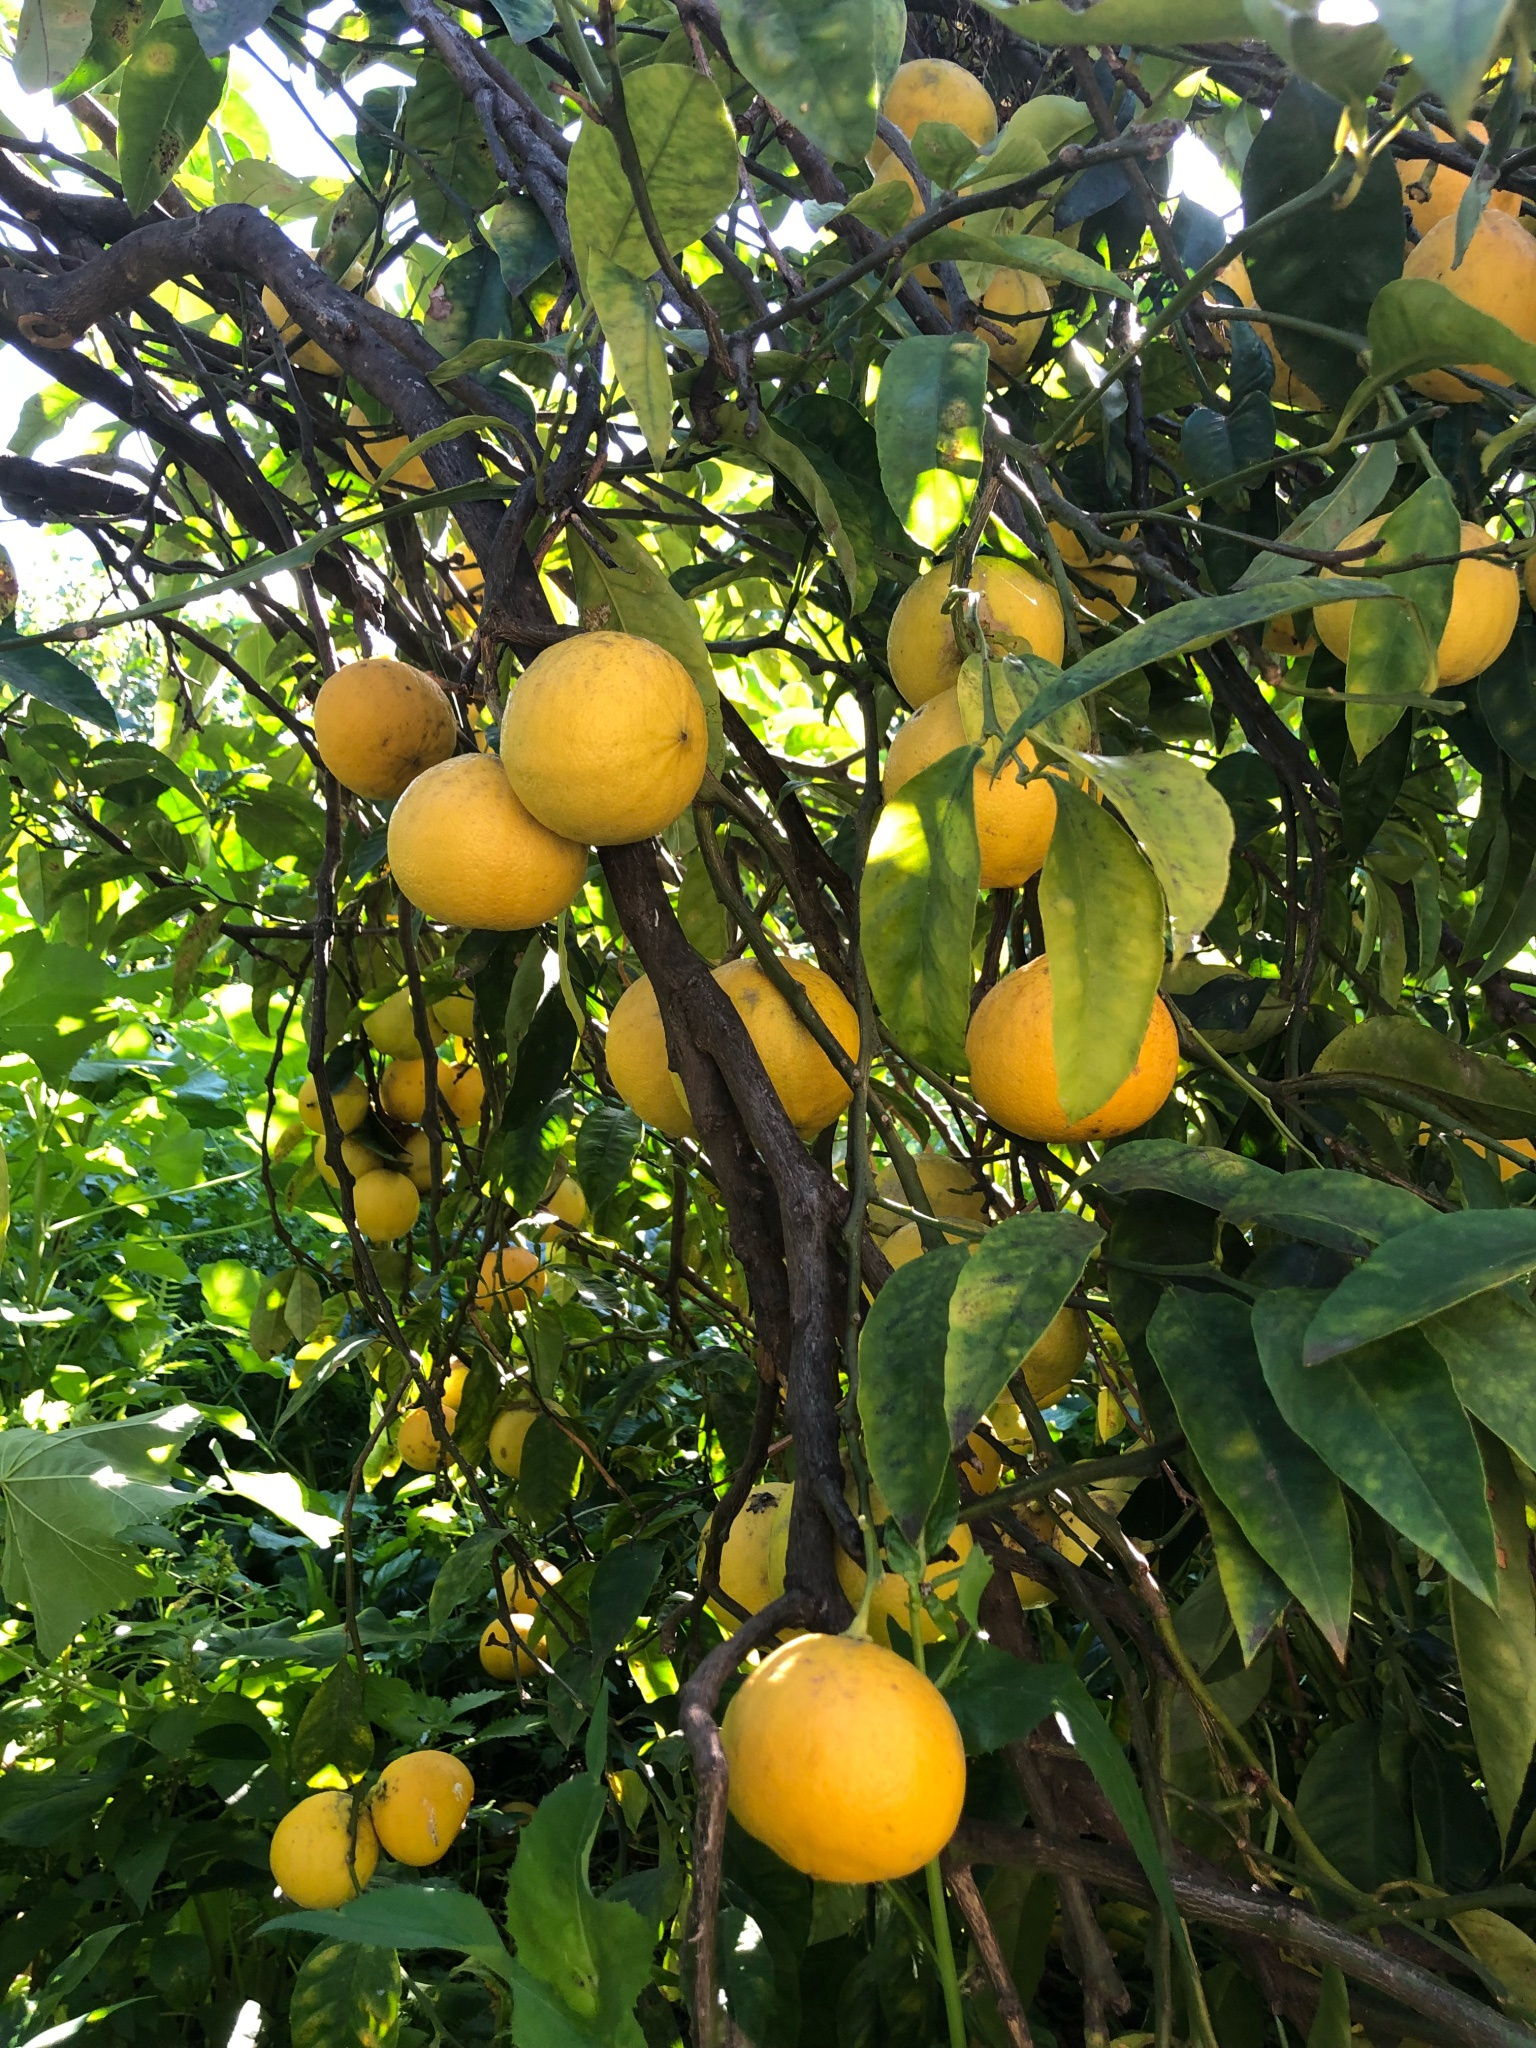 lemon tree_Italy lemon grower visit_2018